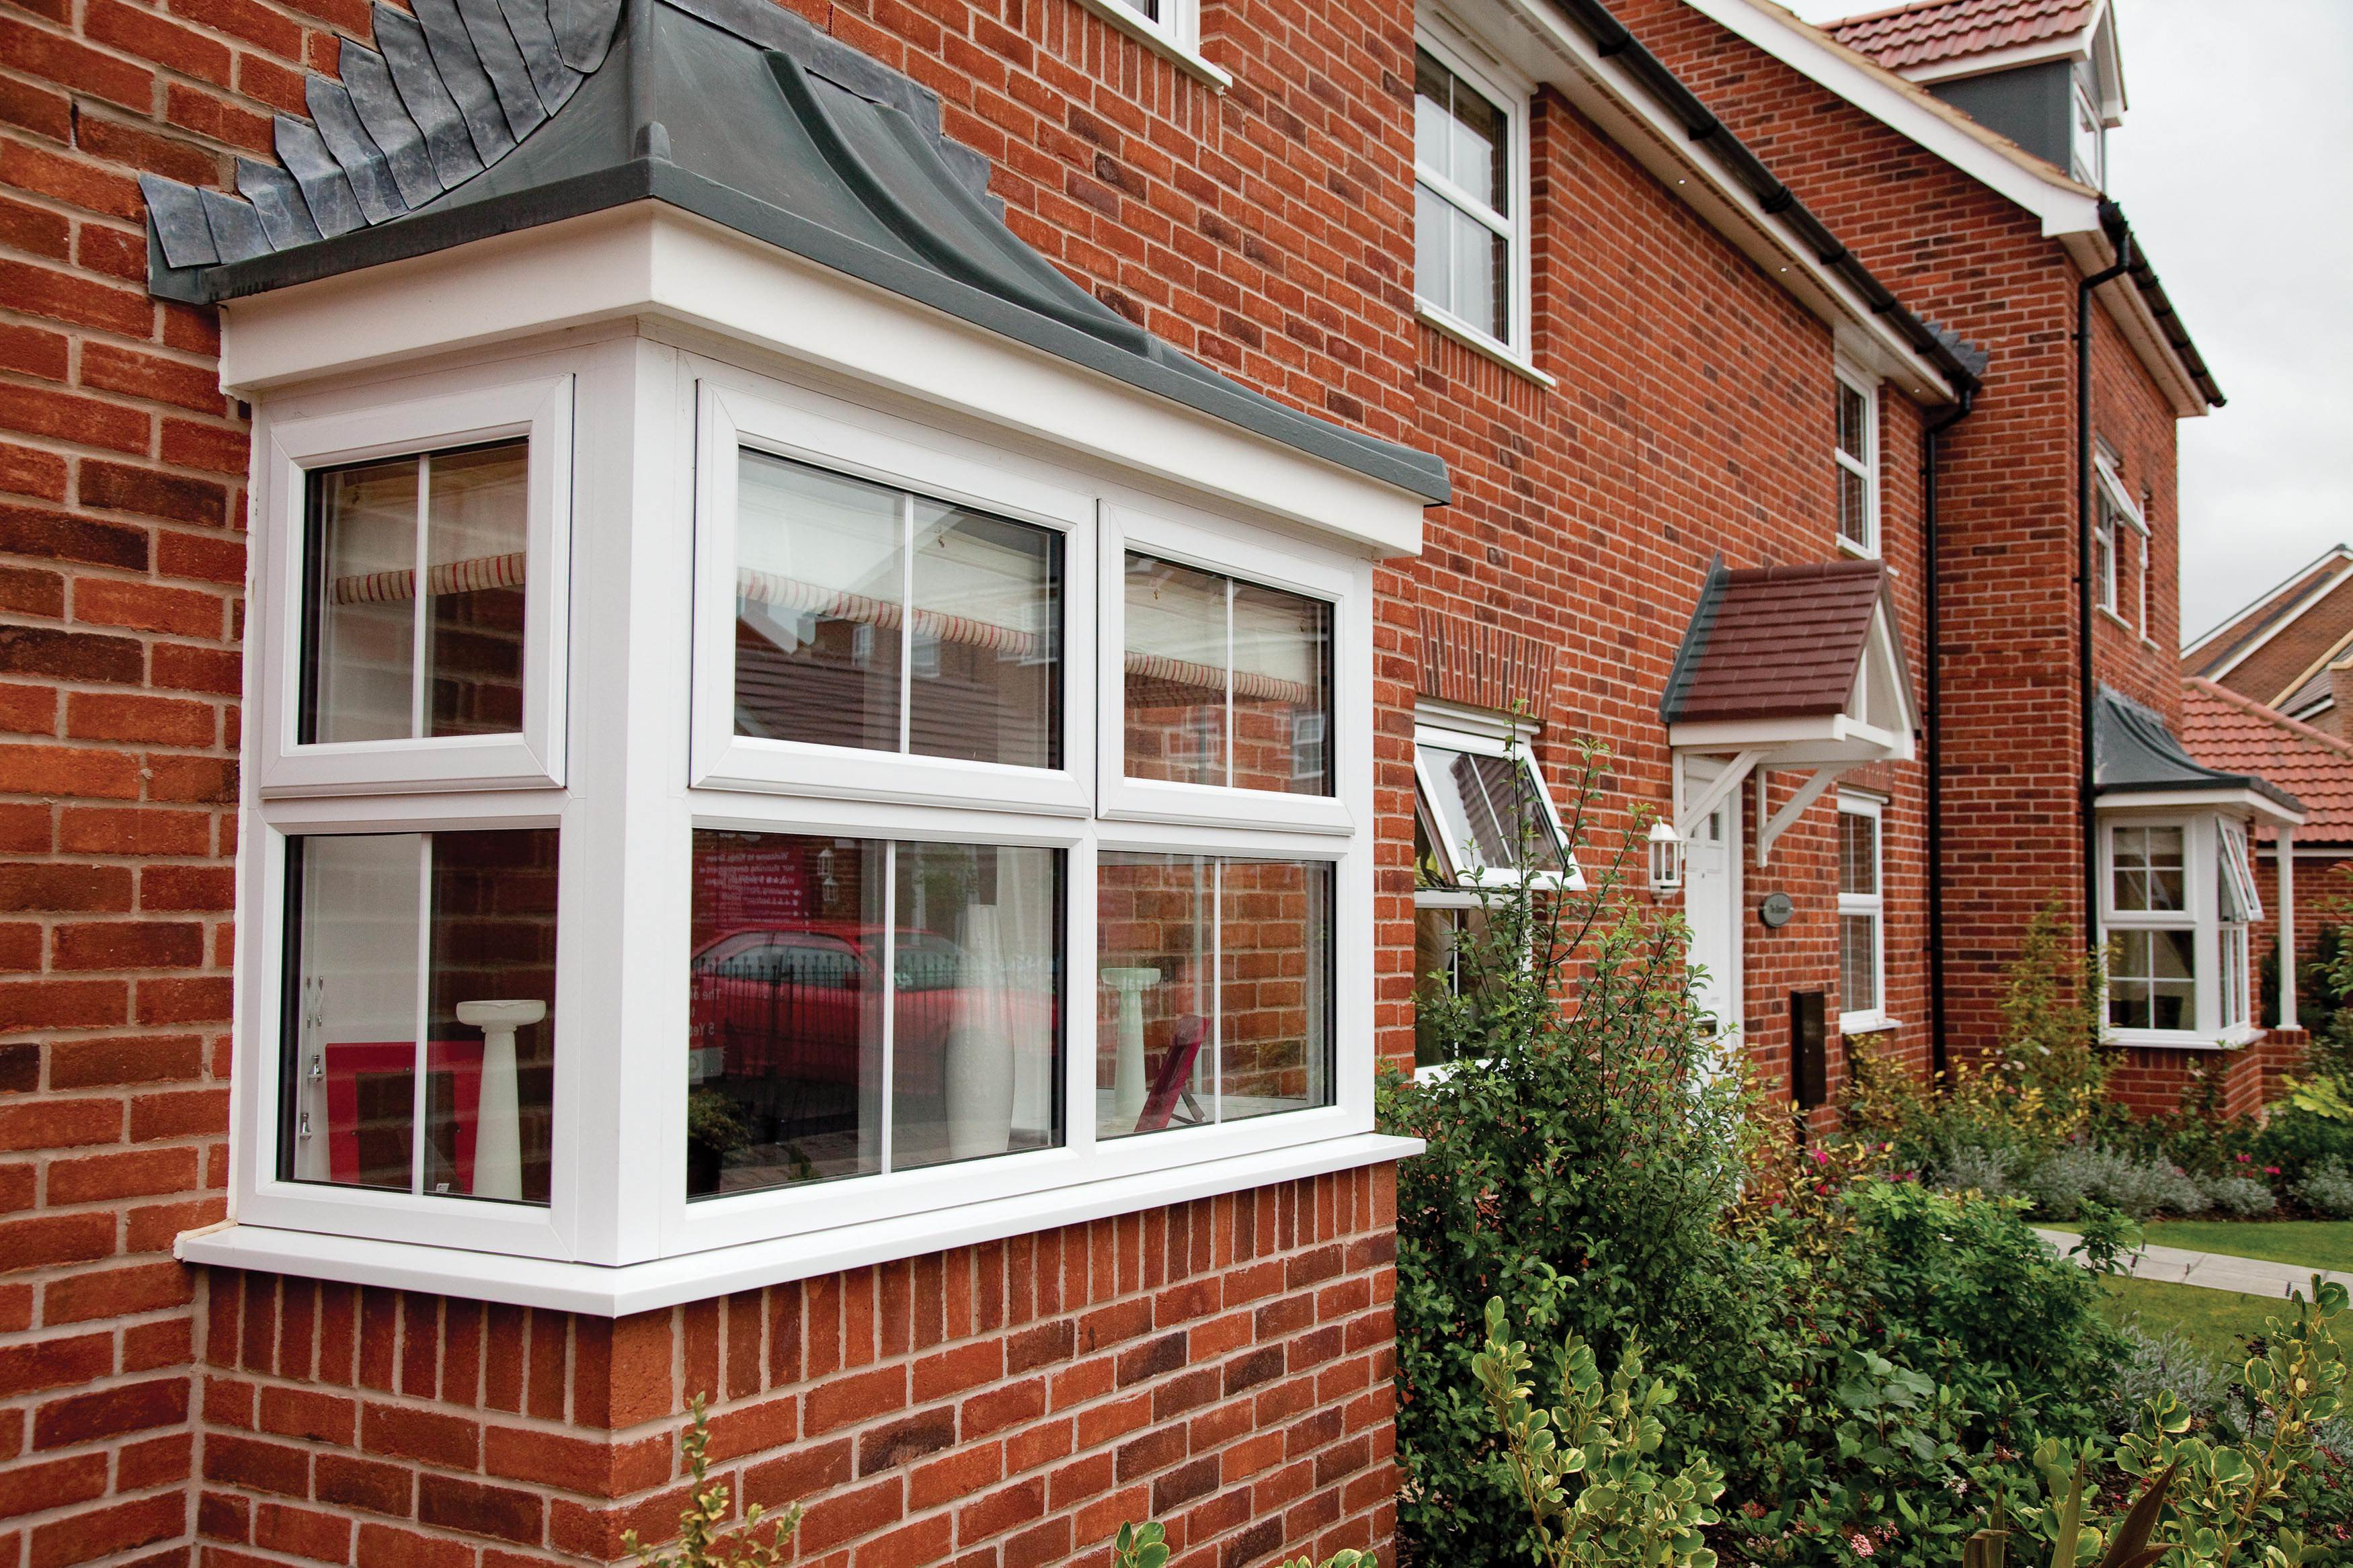 Fire Safety Features For Double Glazed Windows